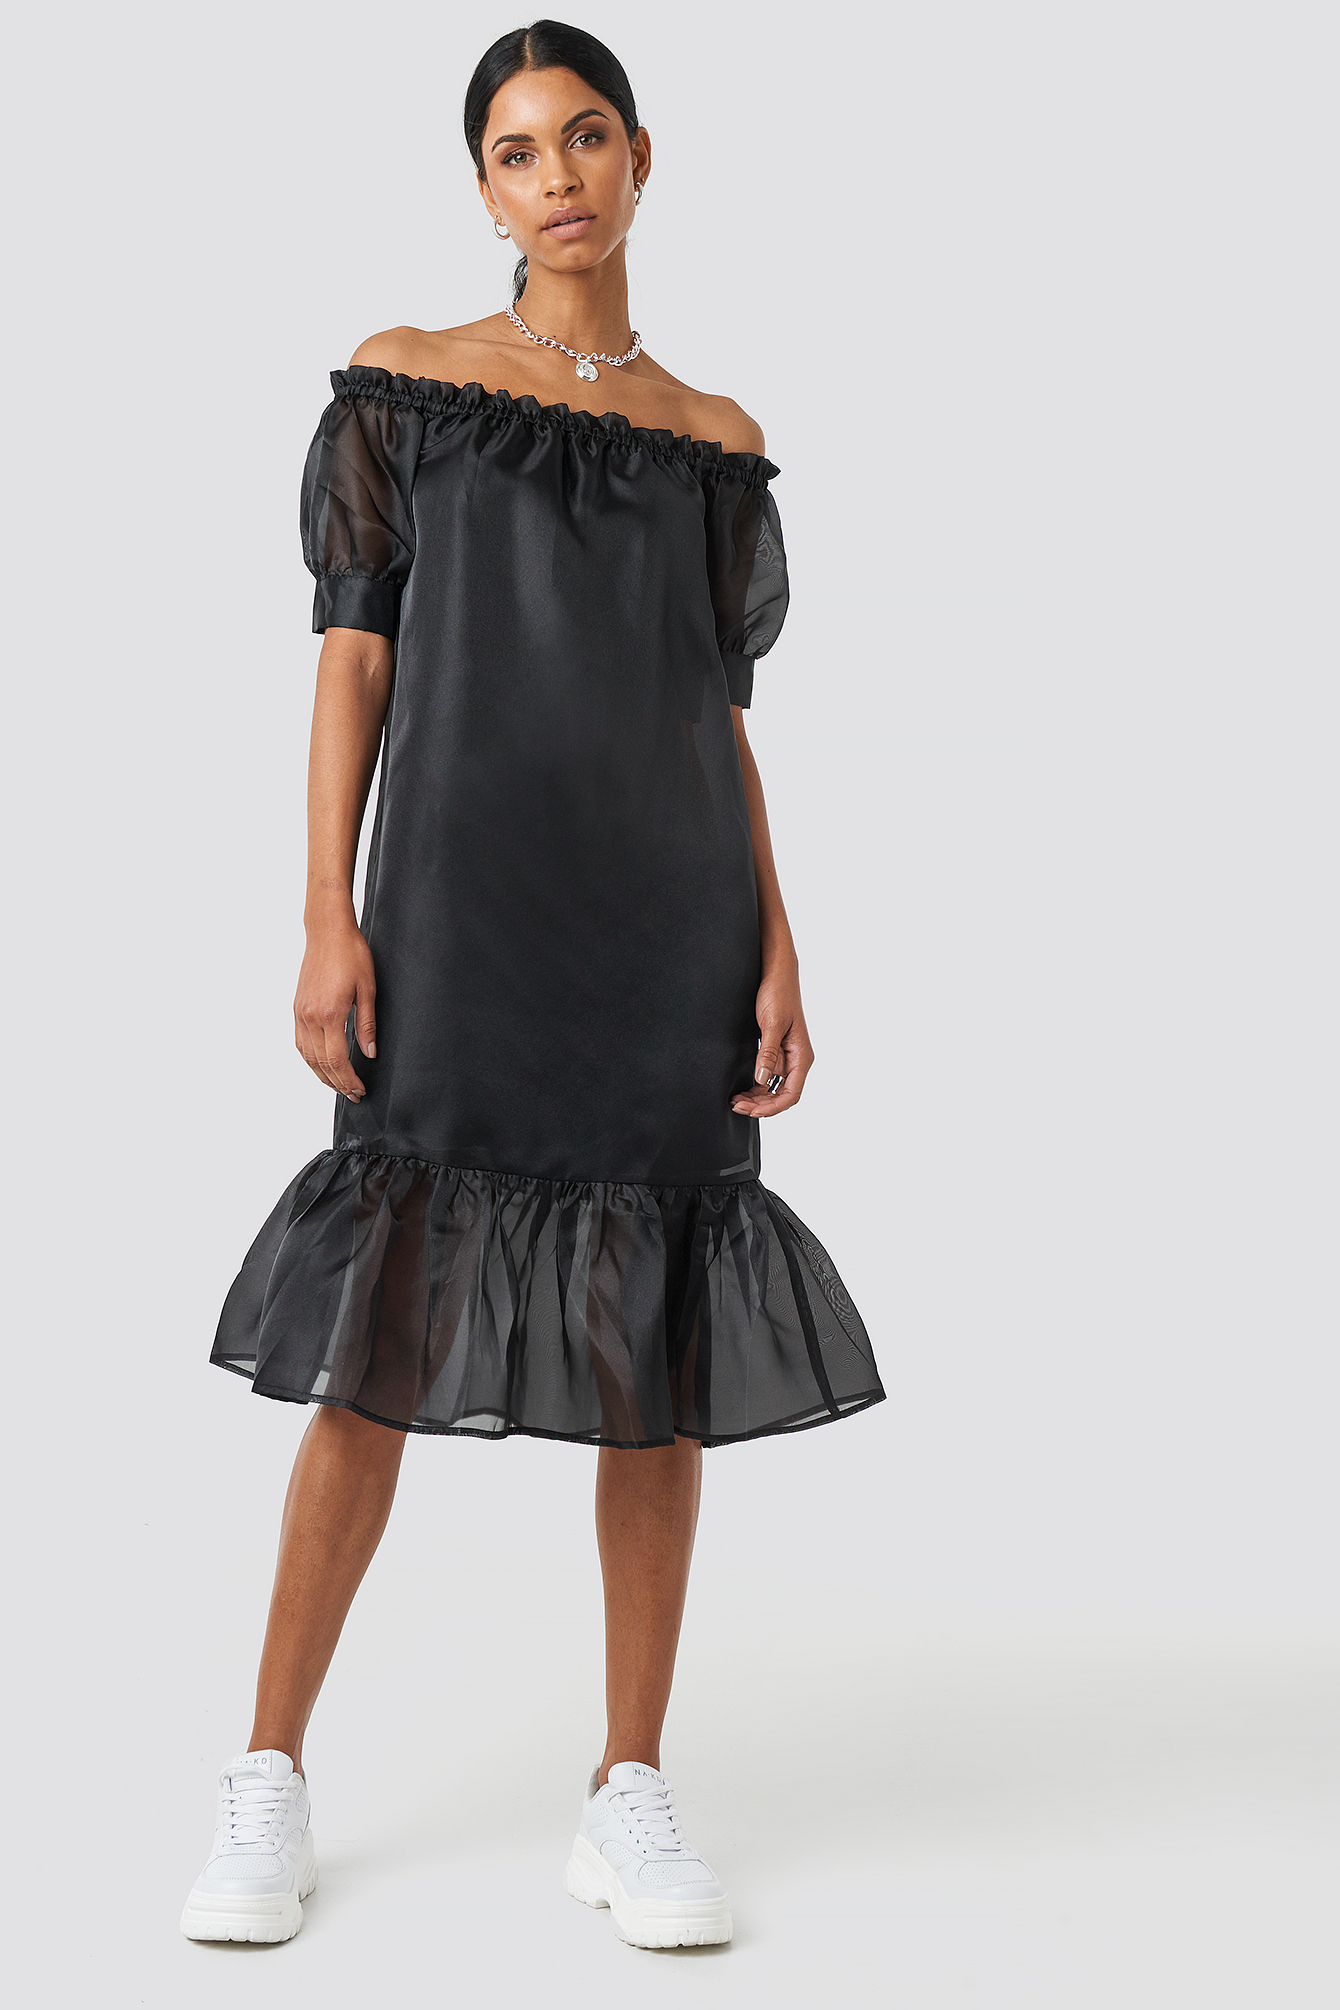 Black Off Shoulder Puffy Mid Flounce Dress